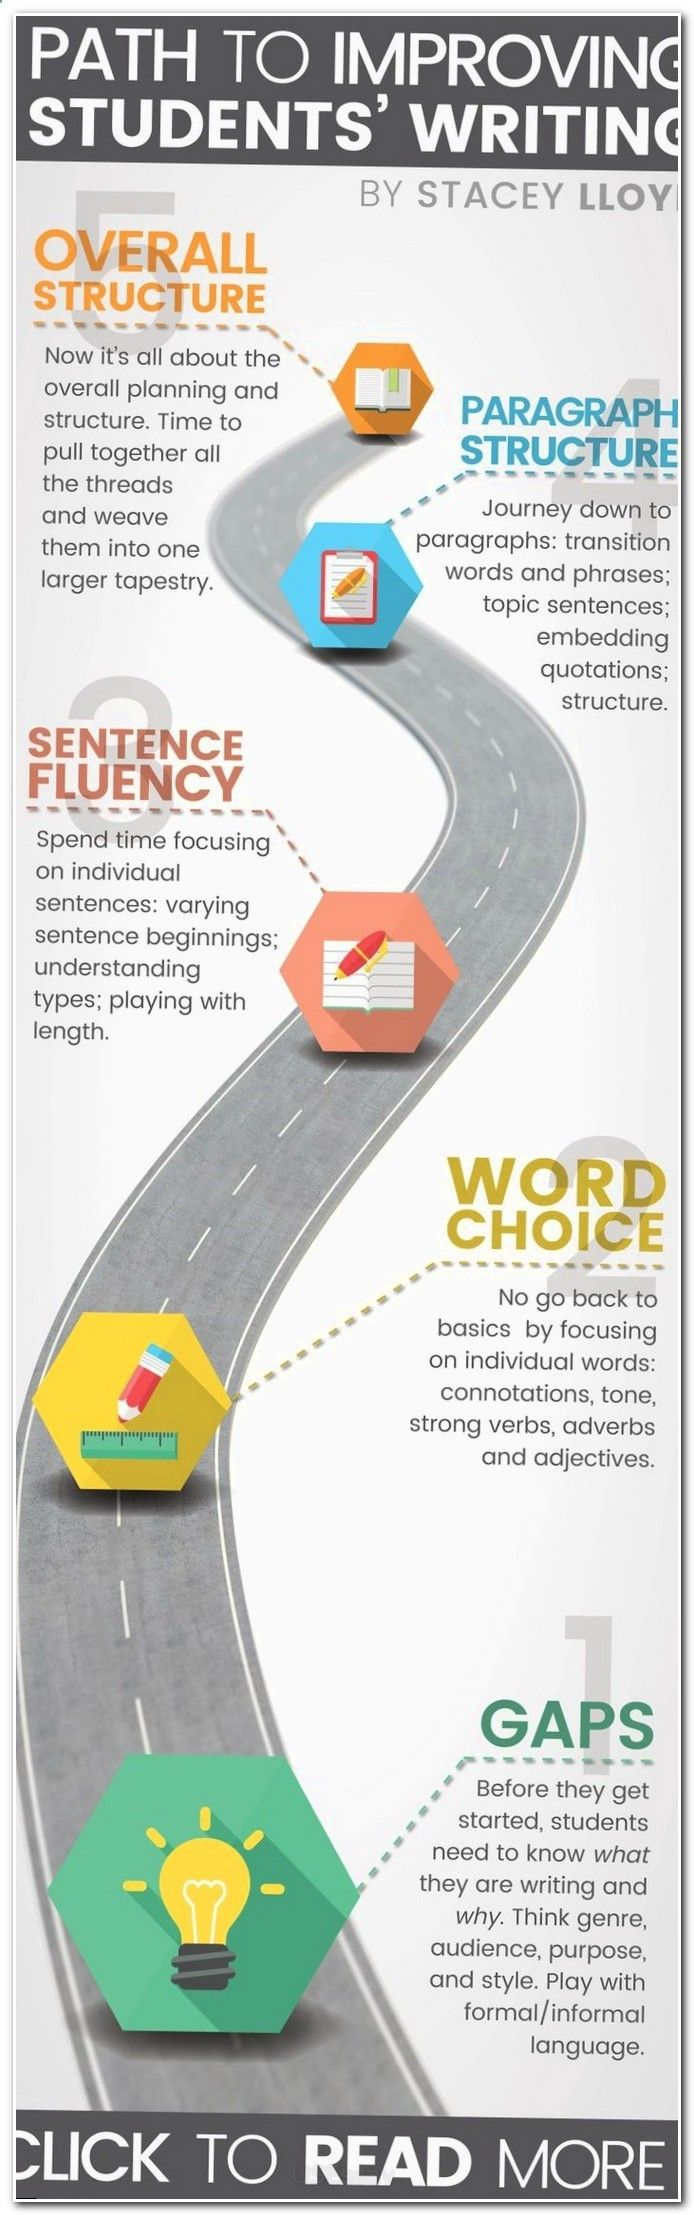 #essay #essaytips how write thesis, writing contest scholarships, help me write my dissertation, cause and effect essay sample, how to write application for school admission, online grammar correction tool free, new pattern of application writing, early years dissertation subjects, the best way to start an essay, best topic for essay, easy paragraphs to type, descriptive essay writing examples, experience essay, death essay, research paper topics interesting